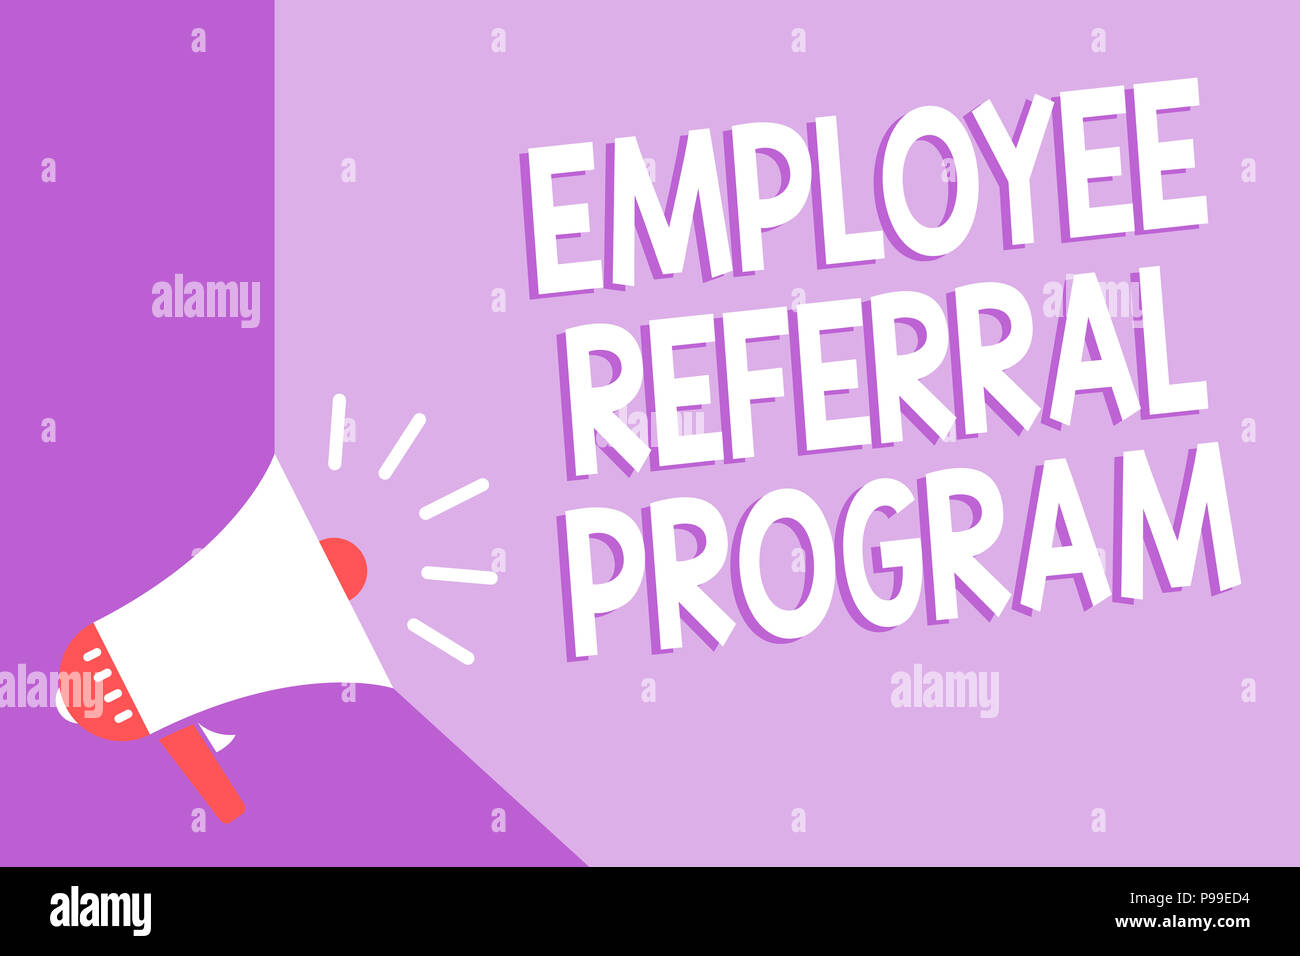 Word writing text Employee Referral Program. Business concept for employees recommend qualified friends relatives Megaphone loudspeaker purple backgro - Stock Image